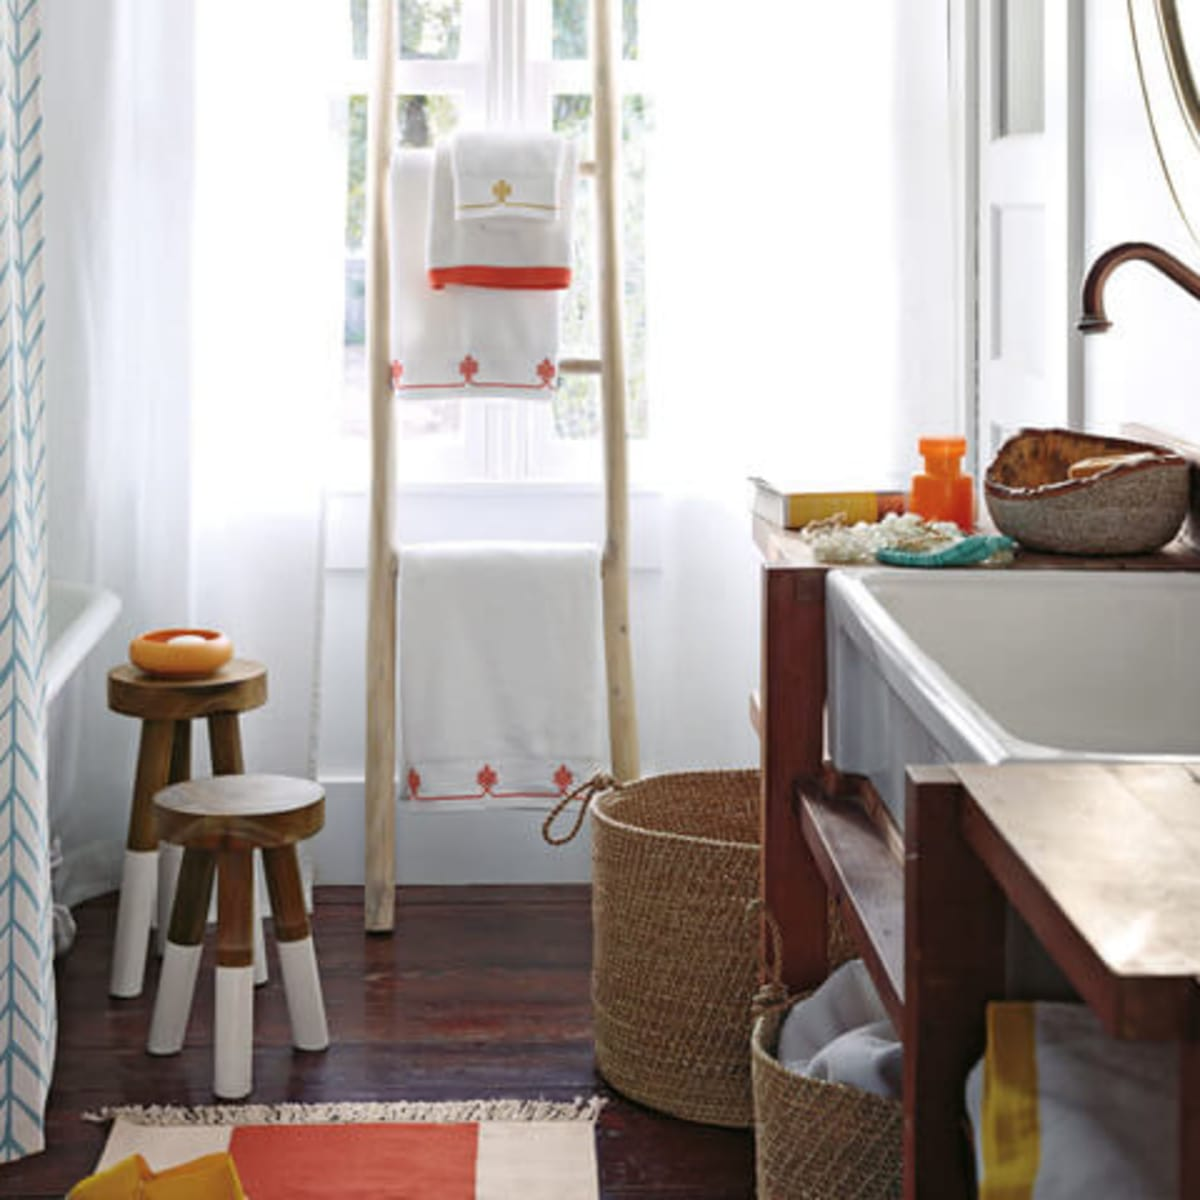 Rustic bathroom idea with ladder shelving